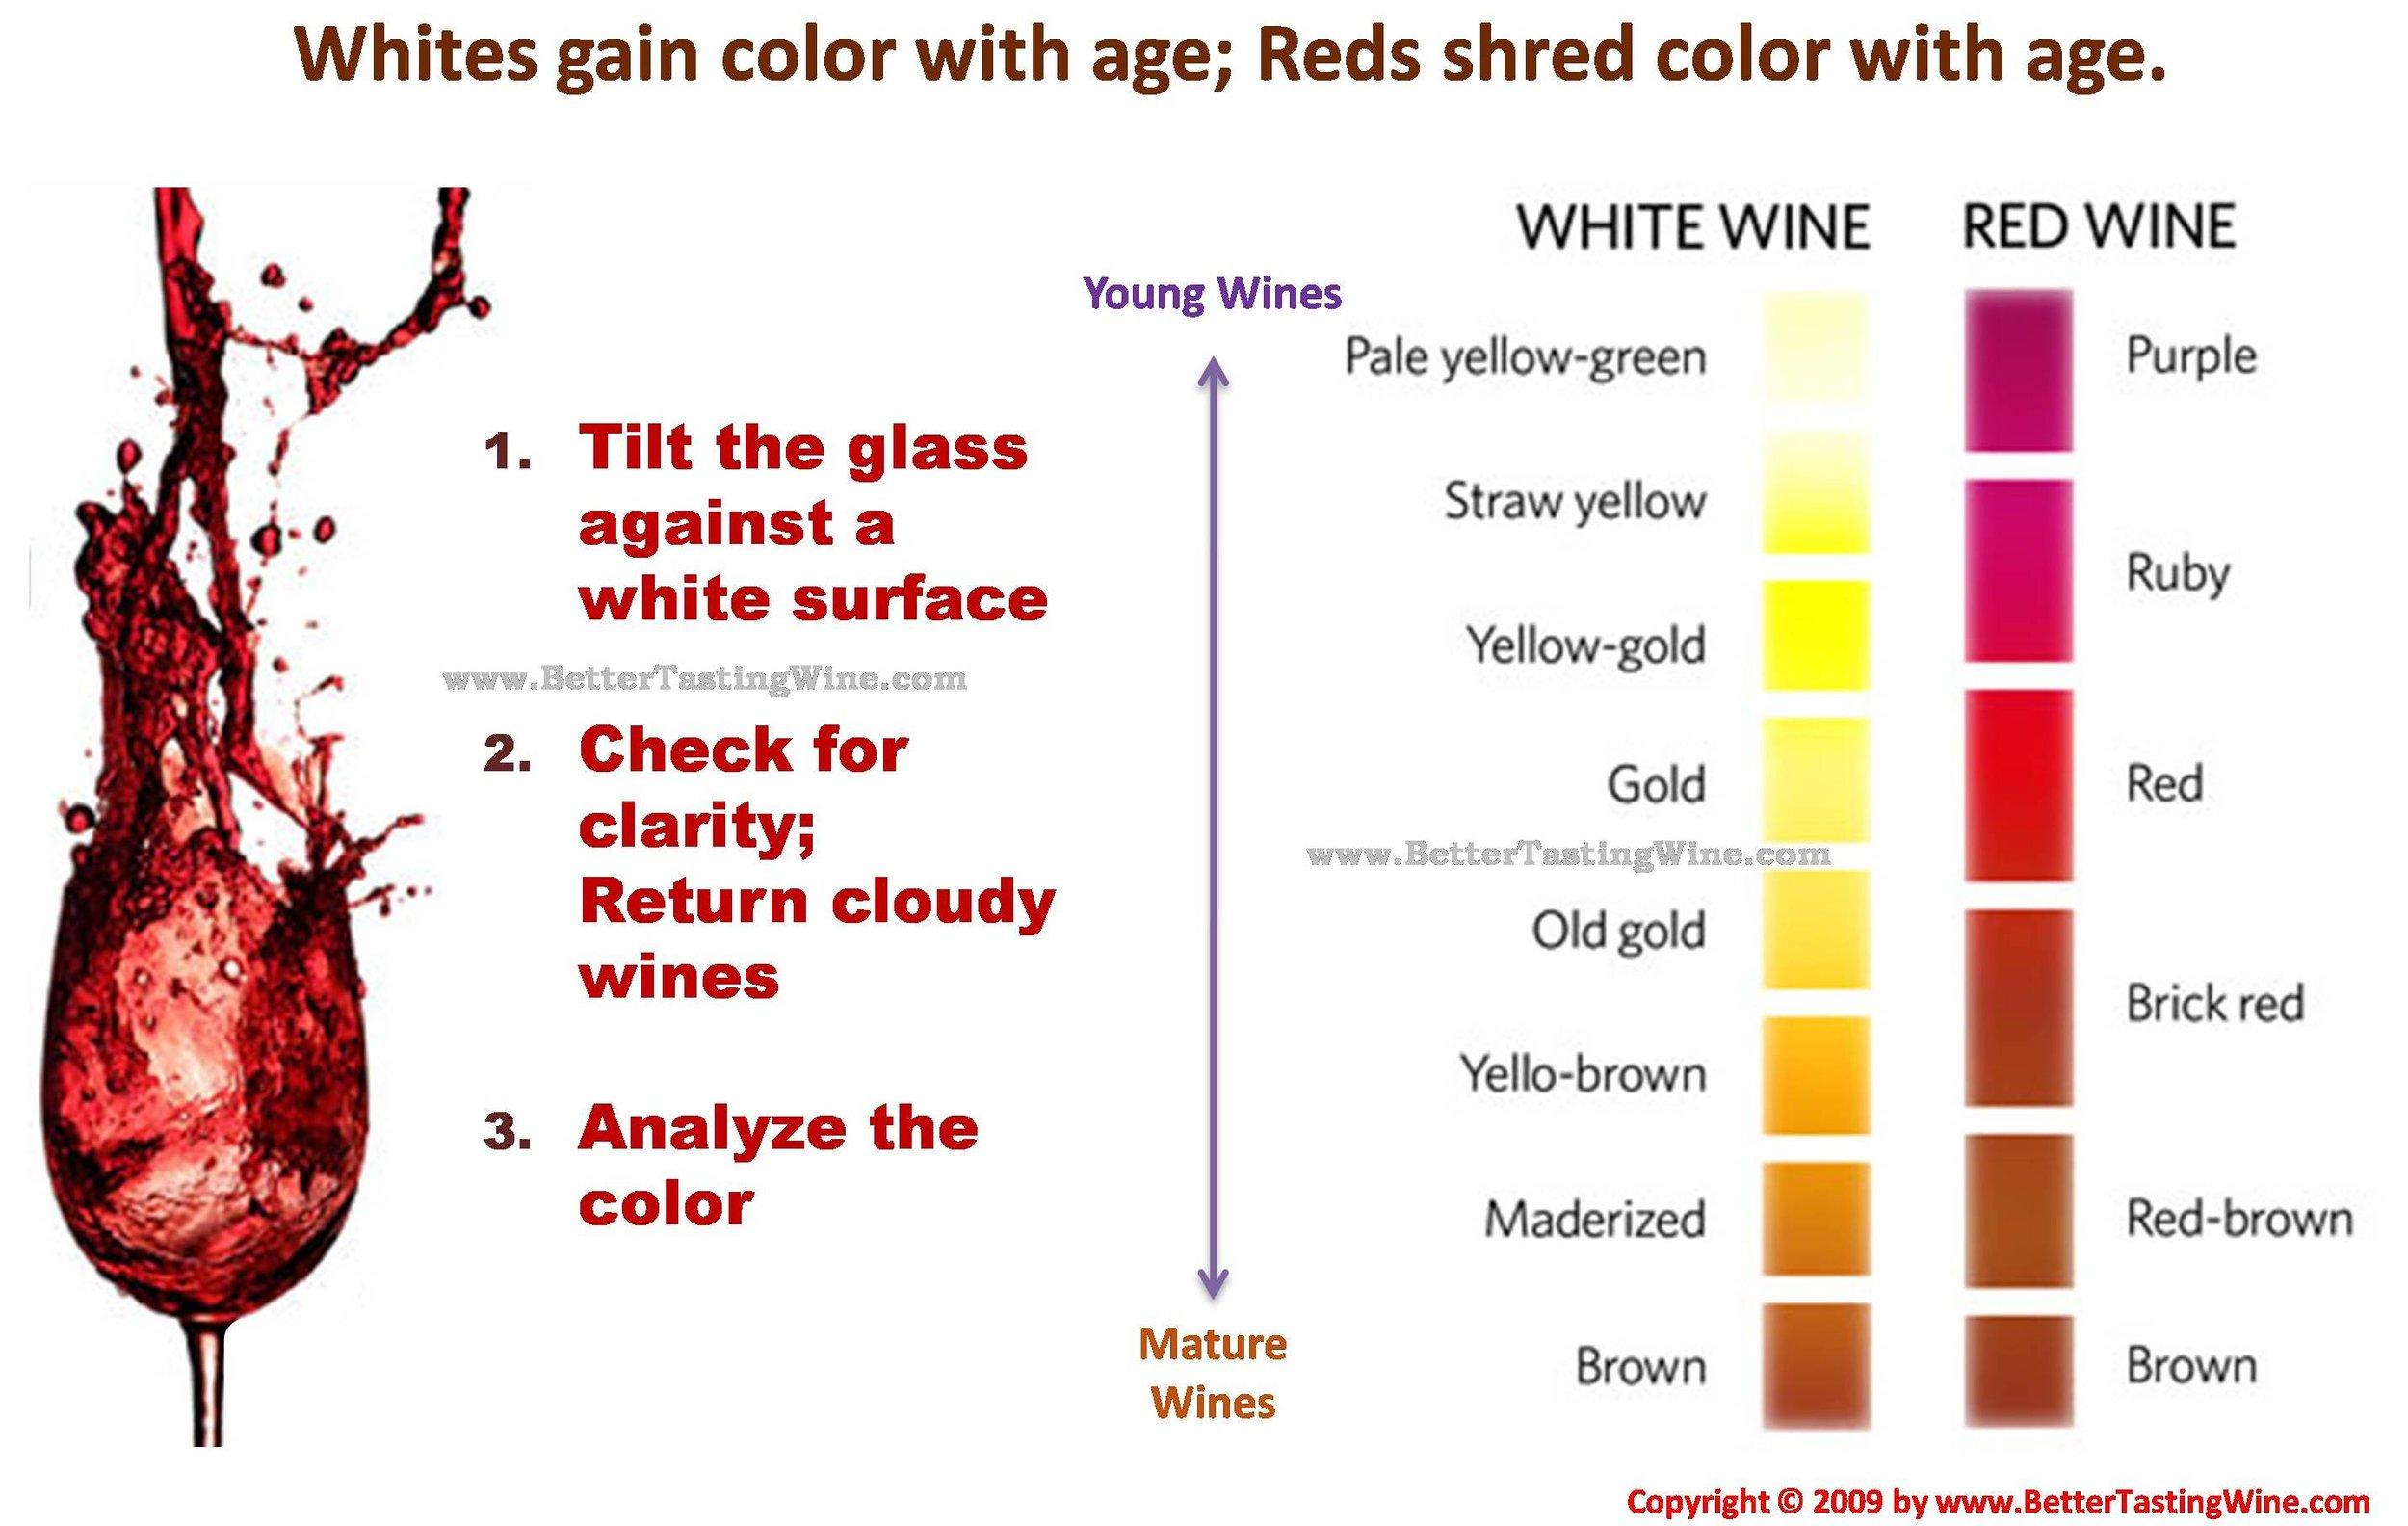 wine color with age.jpg